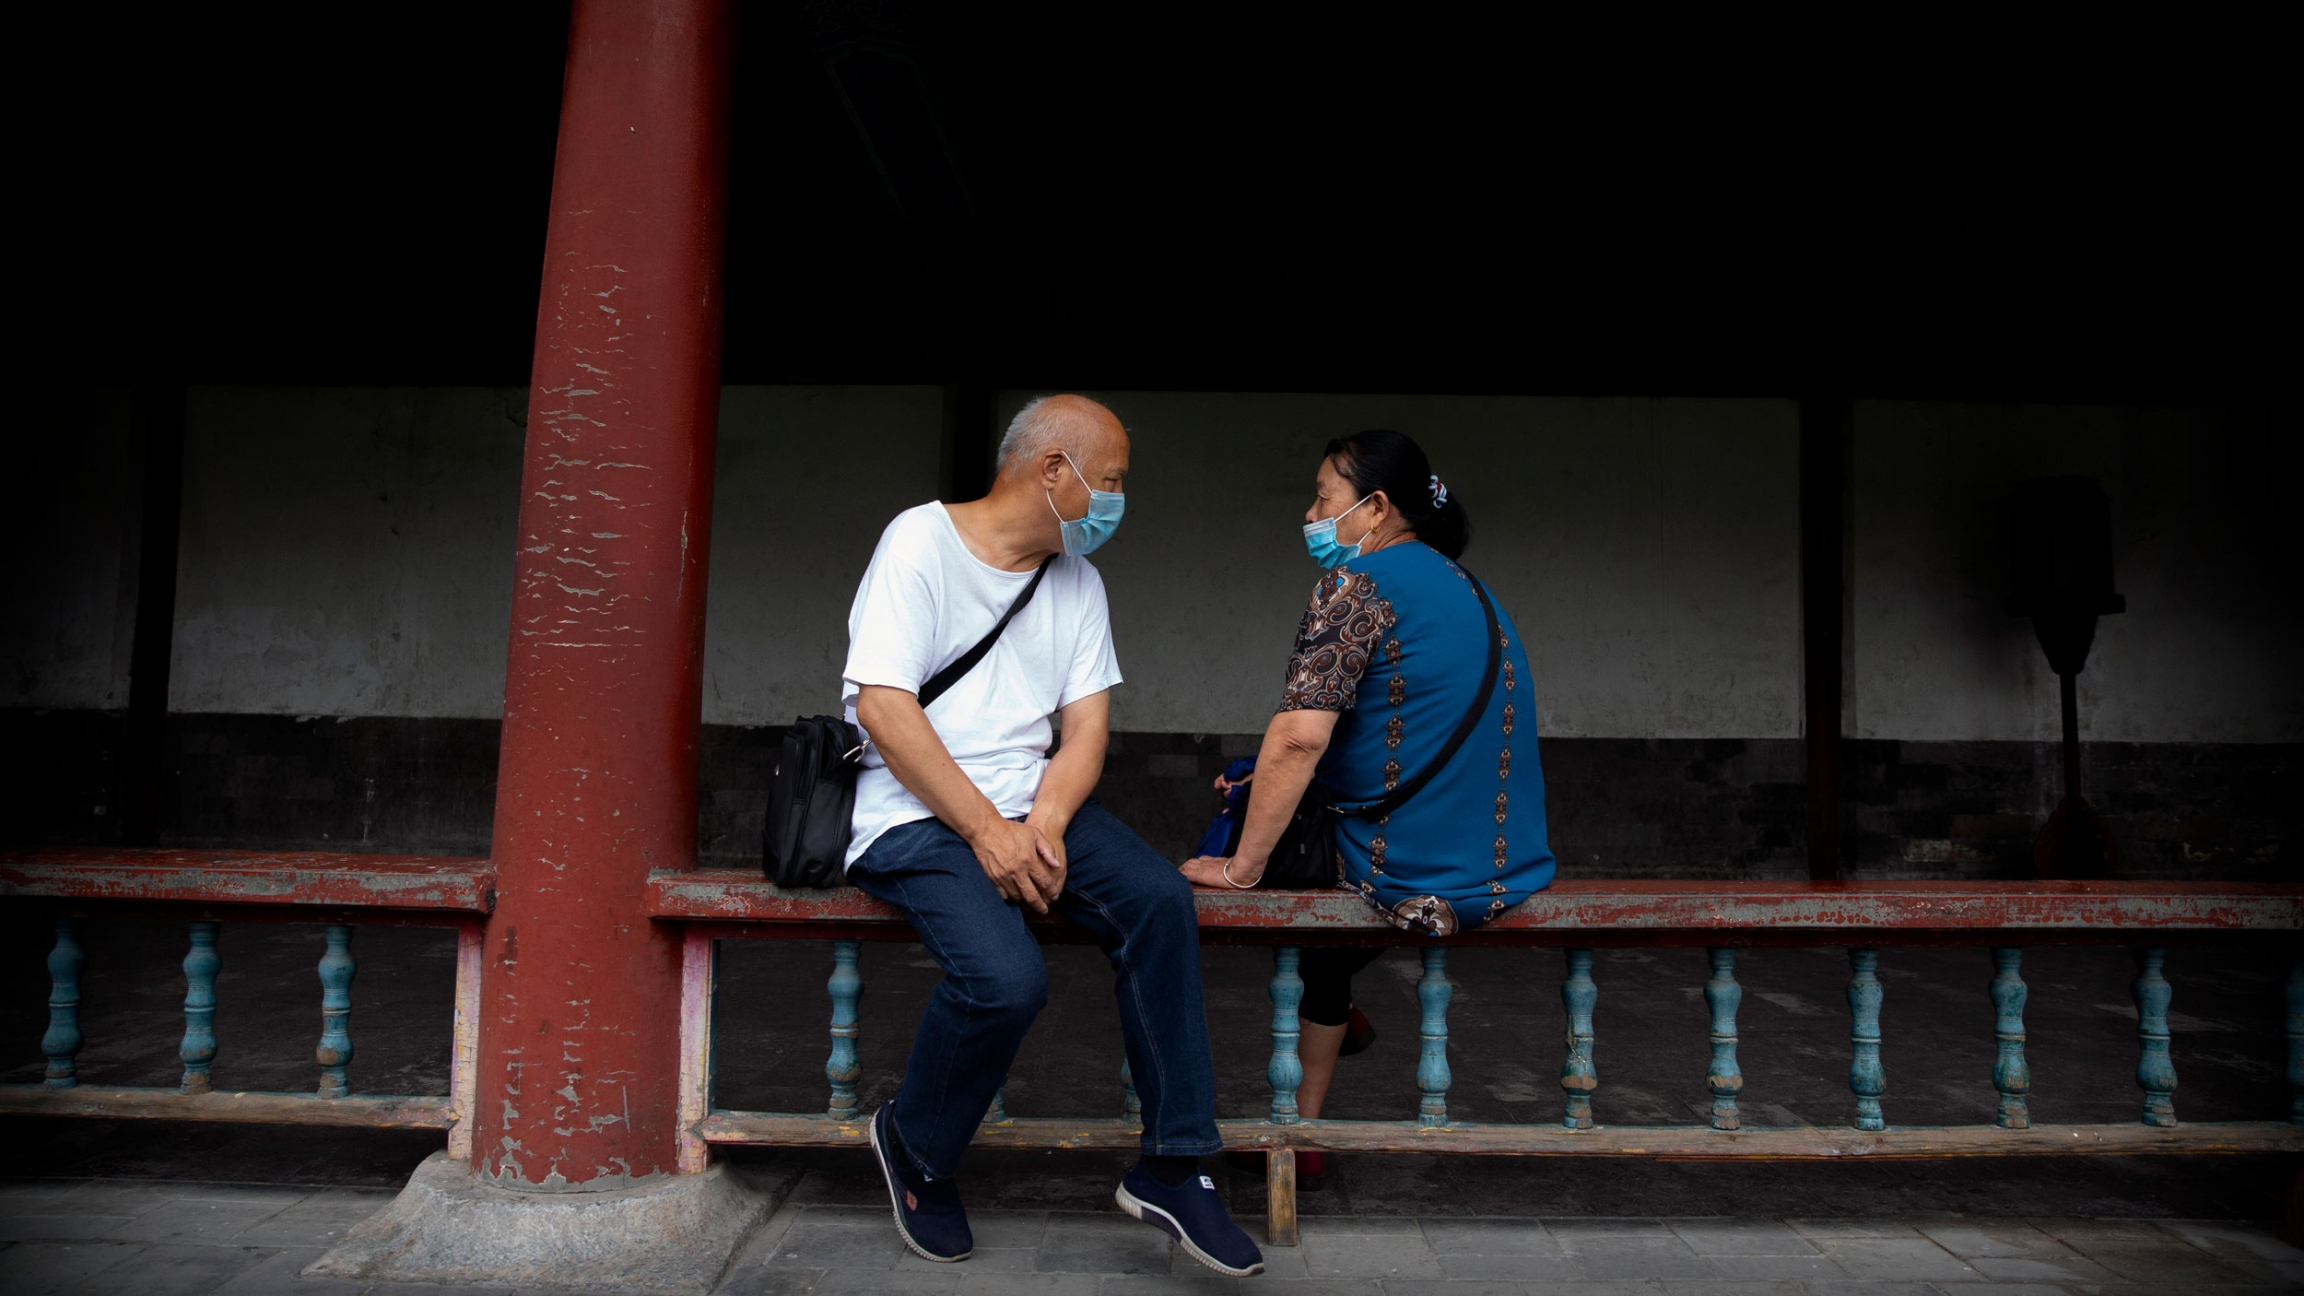 A man and woman are shown sitting on either side of a wooden railing and facing each other while wearing protective masks.